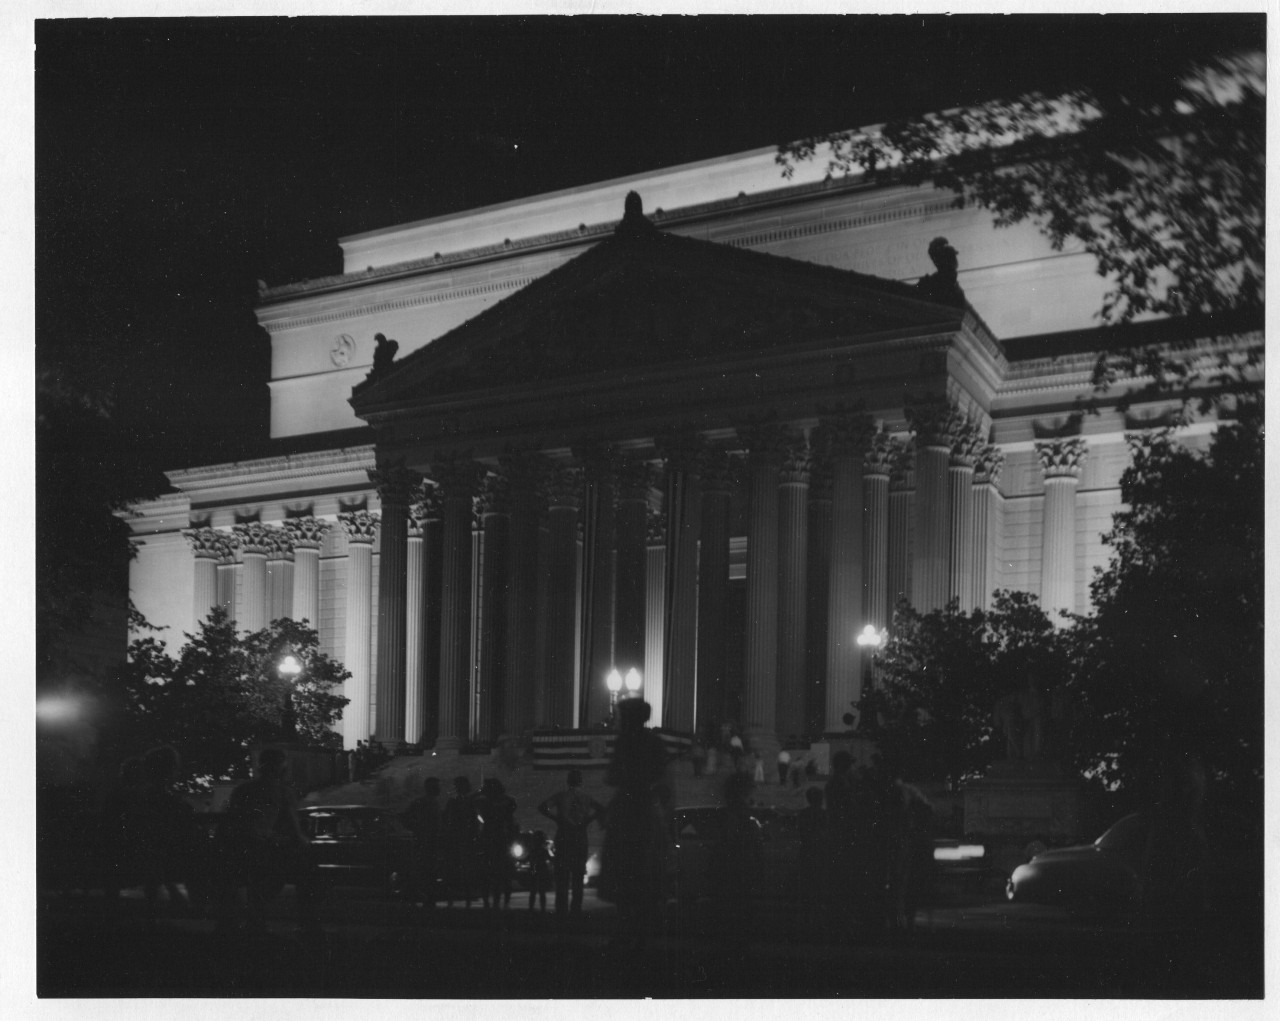 """Good night, usnatarchives!  Photograph of the National Archives Building Lit Up at Night, 08/29/1954 From the series:Historic Photograph File of National Archives Events and Personnel, 1935 - 1975  The National Archives Building as it appeared 60 years ago in 1954. We recently celebrated our 80th birthday with the anniversary of the """"National Archives Act"""" on June 19, 1934. More from the #Archives80 celebration →"""